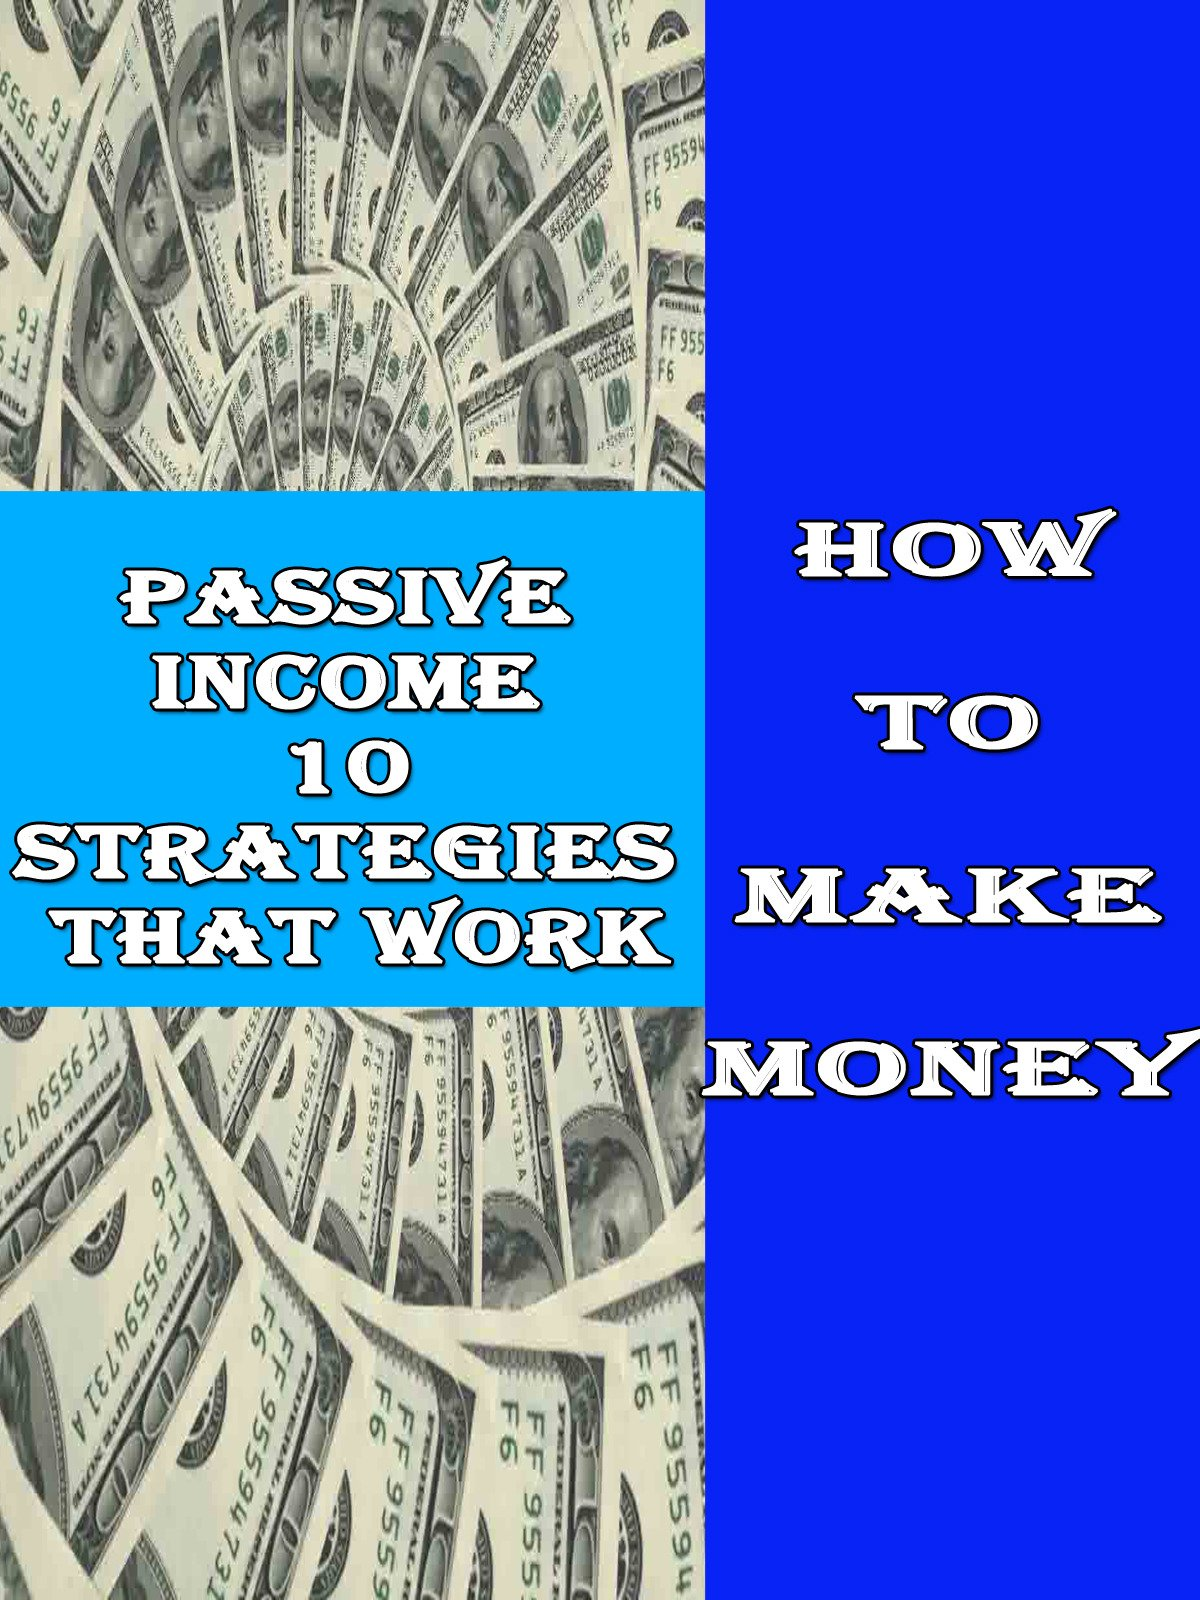 Passive Income 10 strategies that work